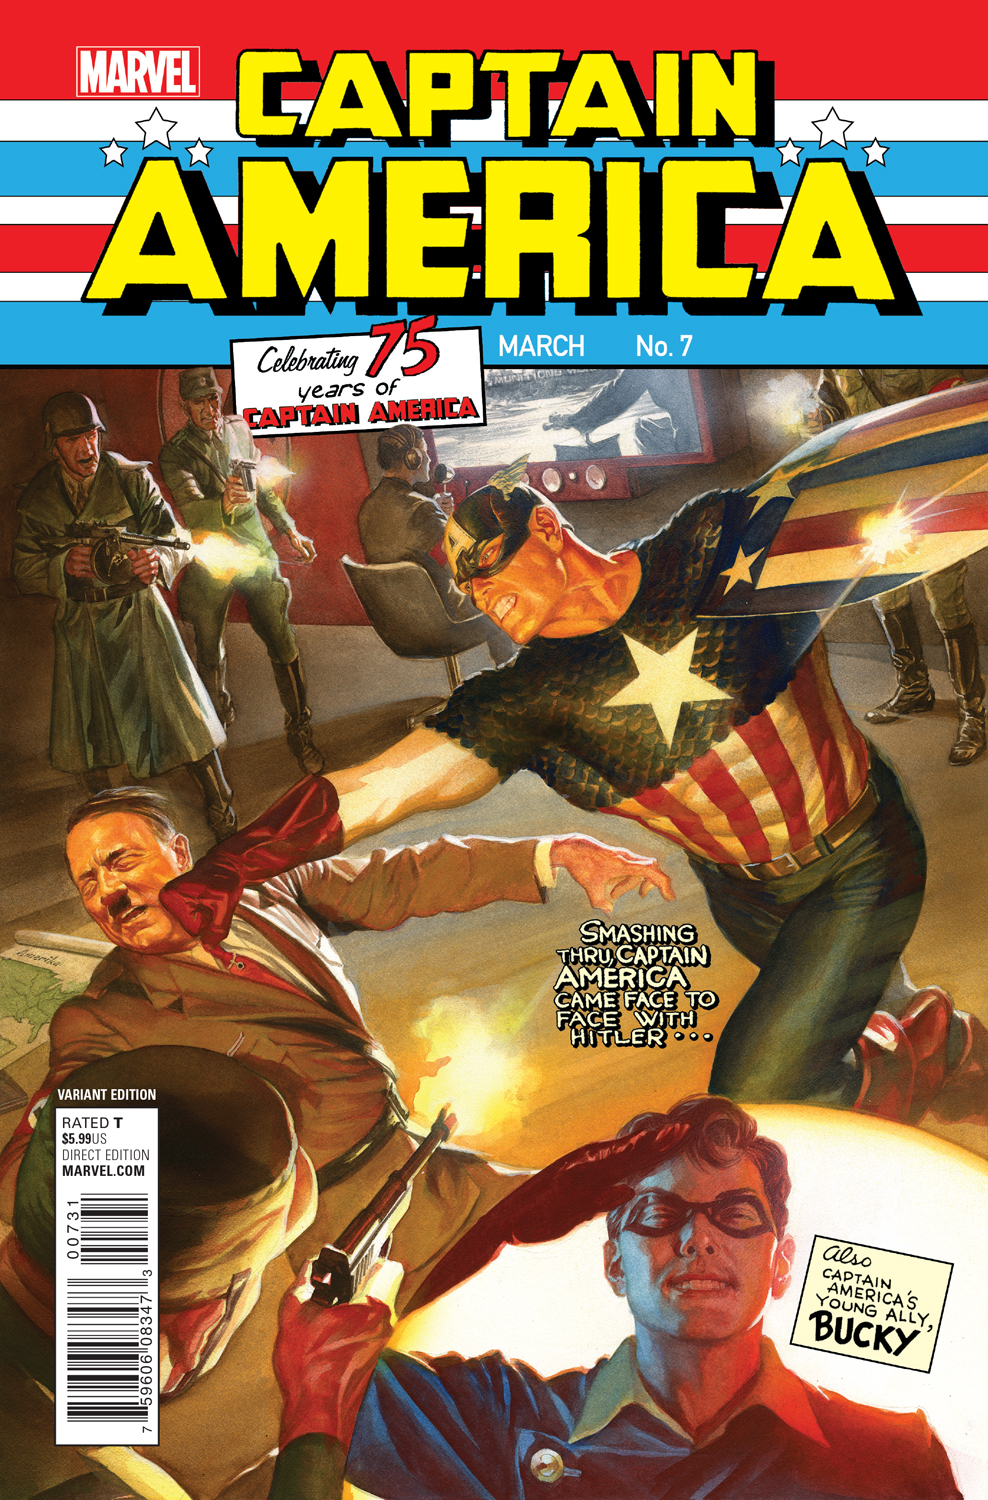 Variant Cover by Alex Ross